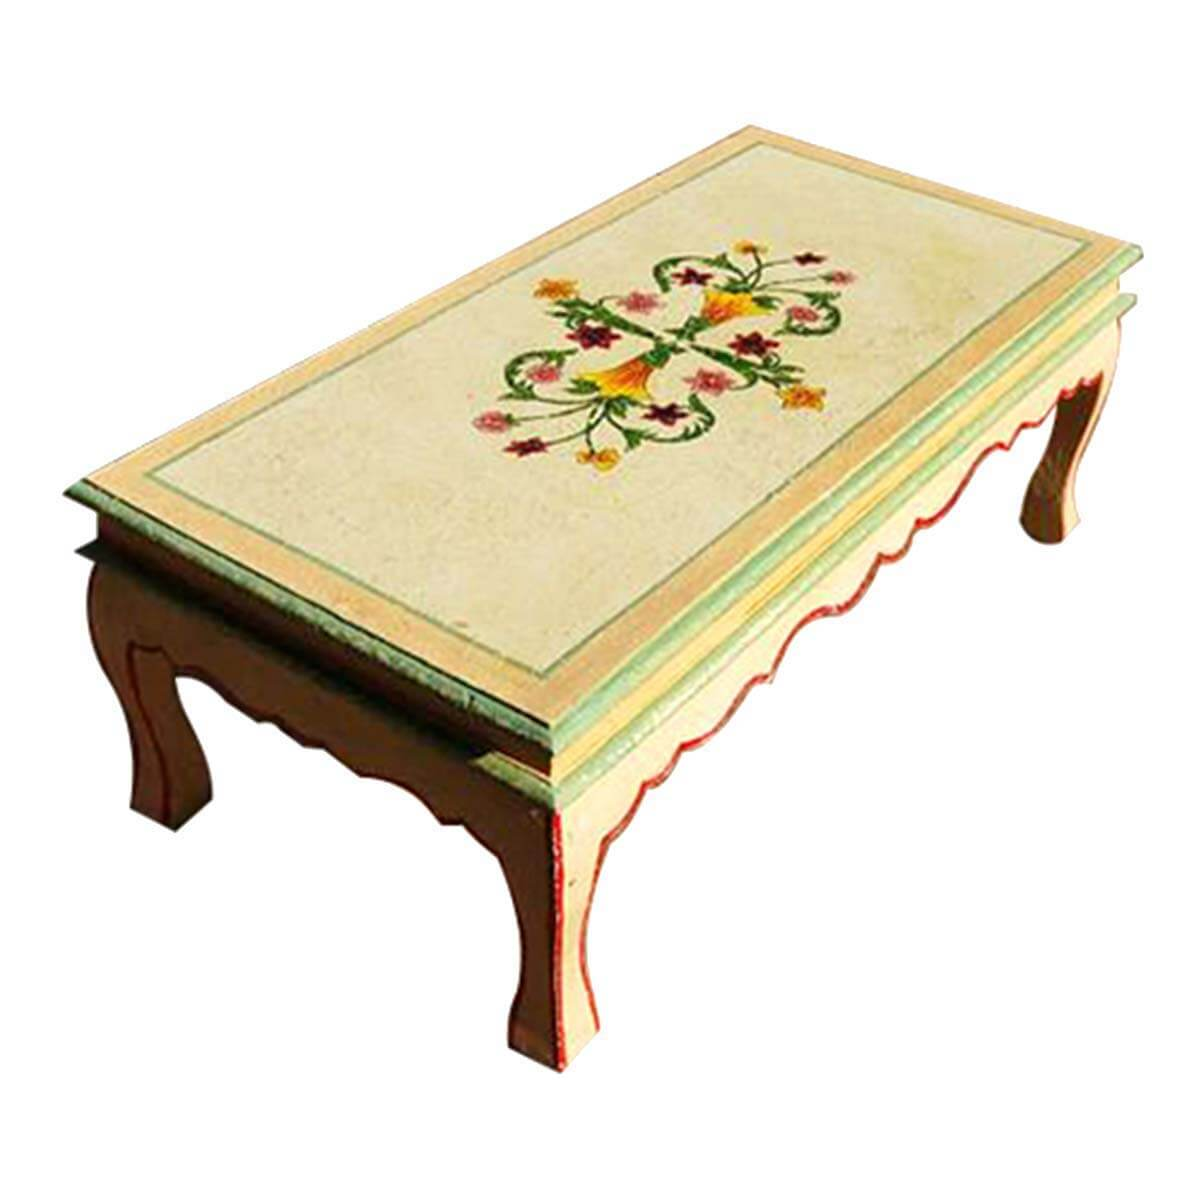 Painted Retro Coffee Table: Queen Anne Style Vintage Floral Hand Painted Coffee Table